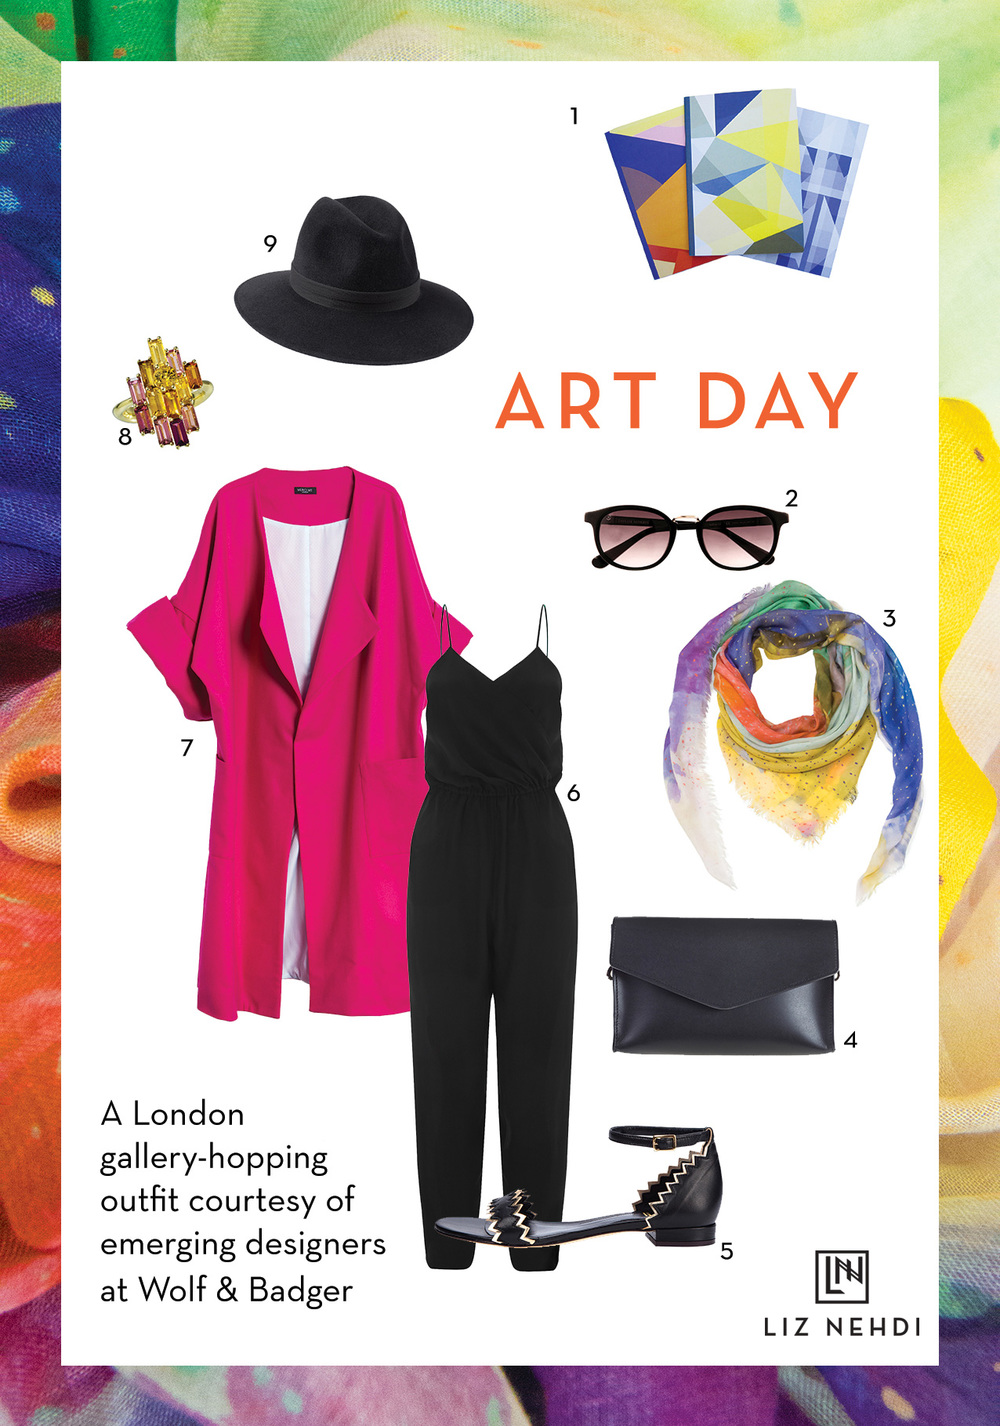 Art Day Collage by Liz Nehdi Studio, 2015. See below for product info